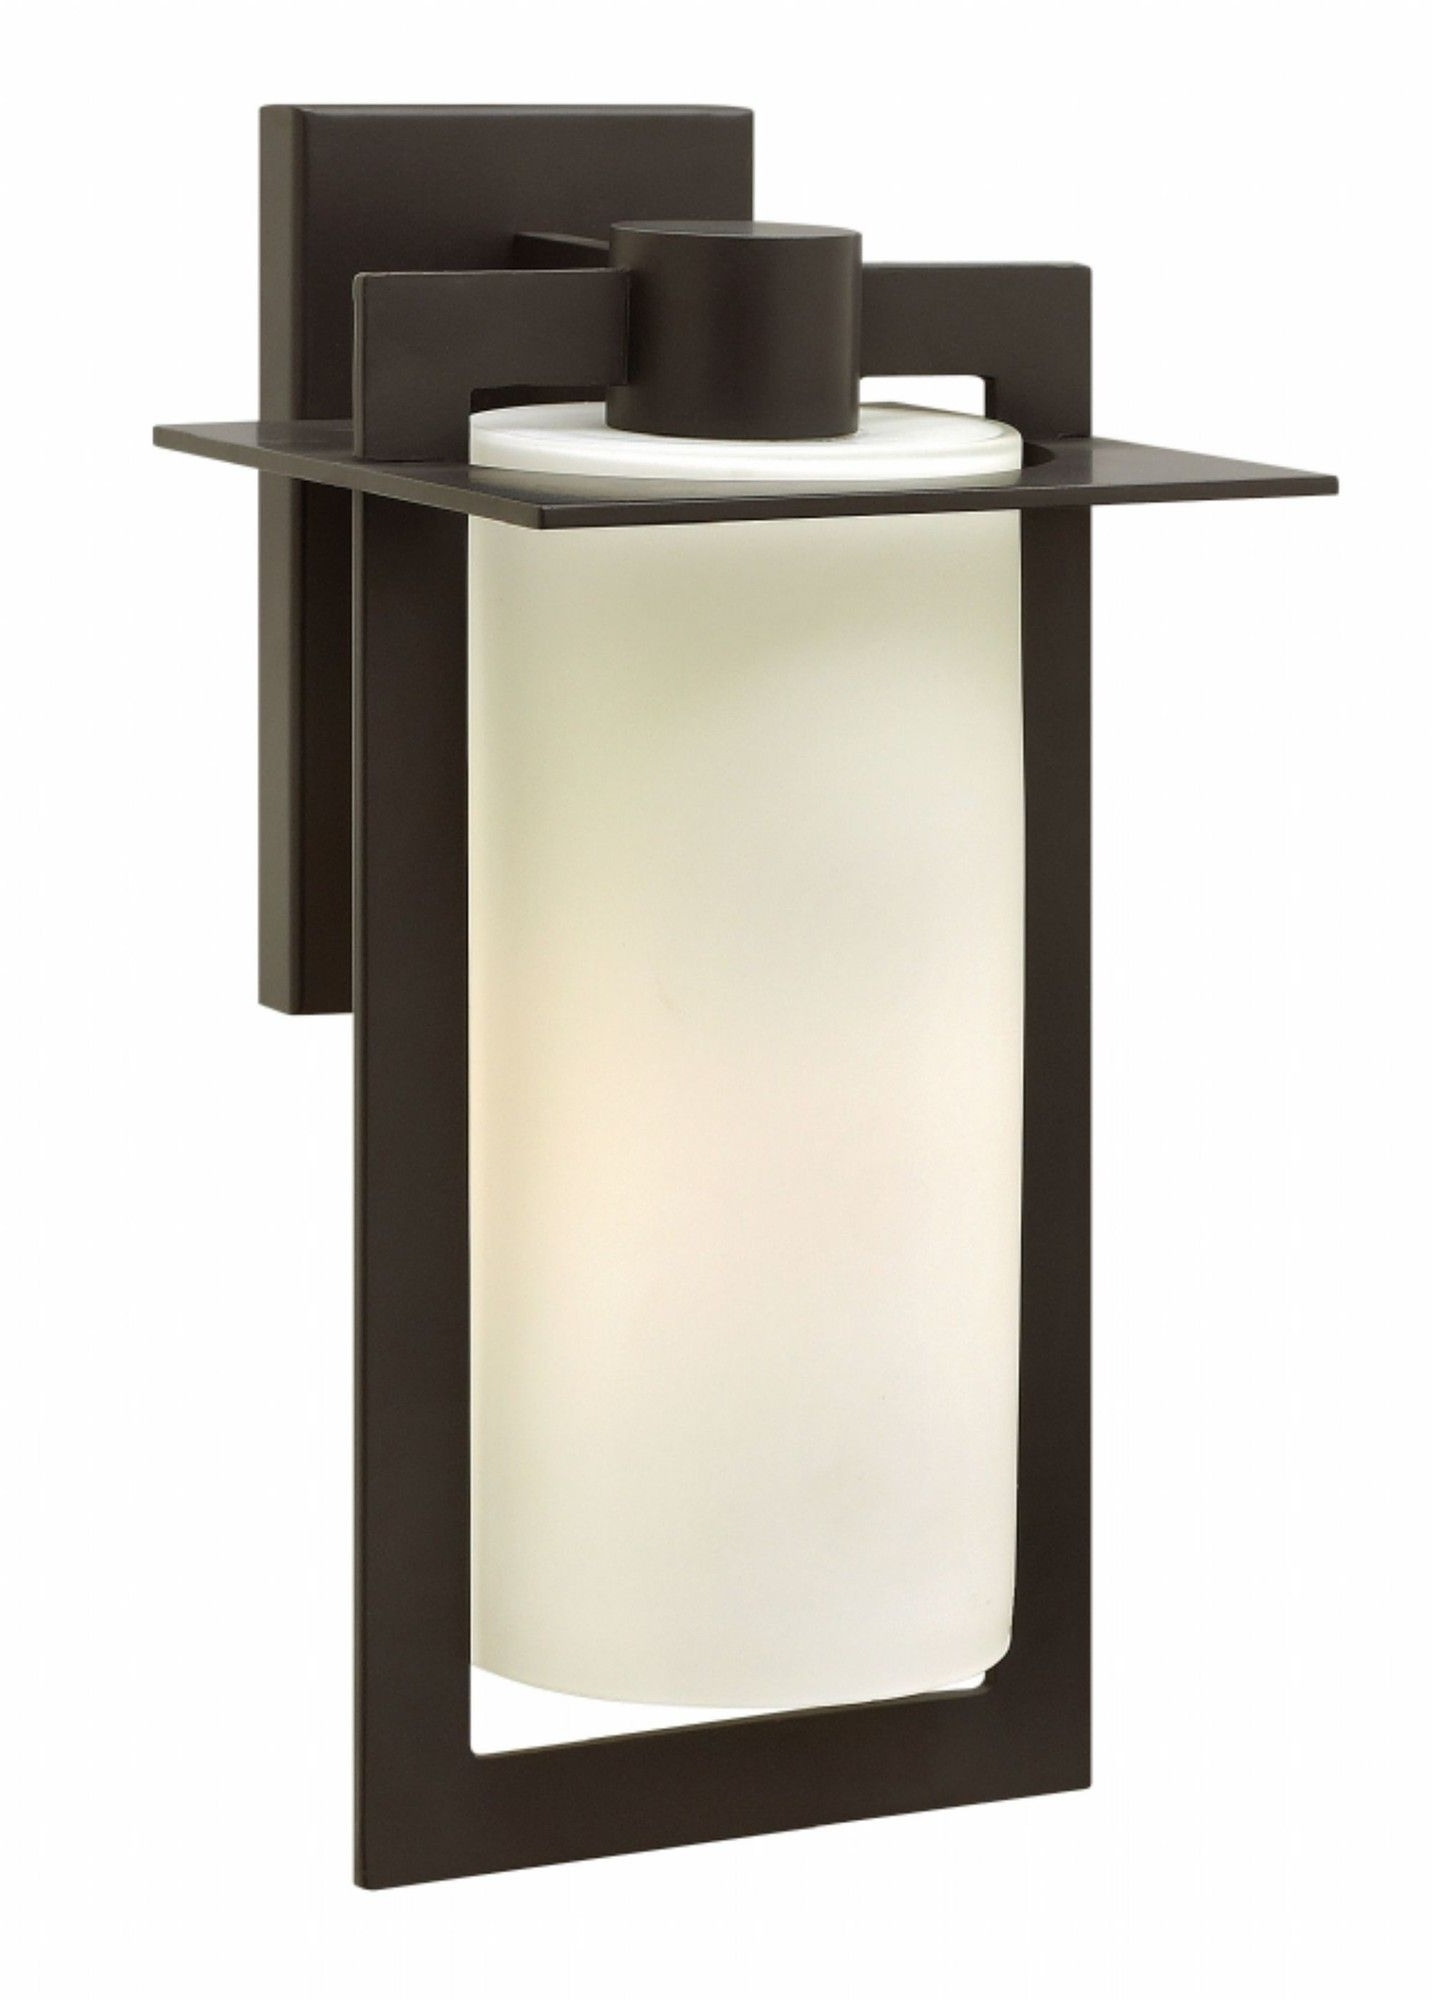 Colfax 1 Light Outdoor Wall Lantern (View 5 of 20)